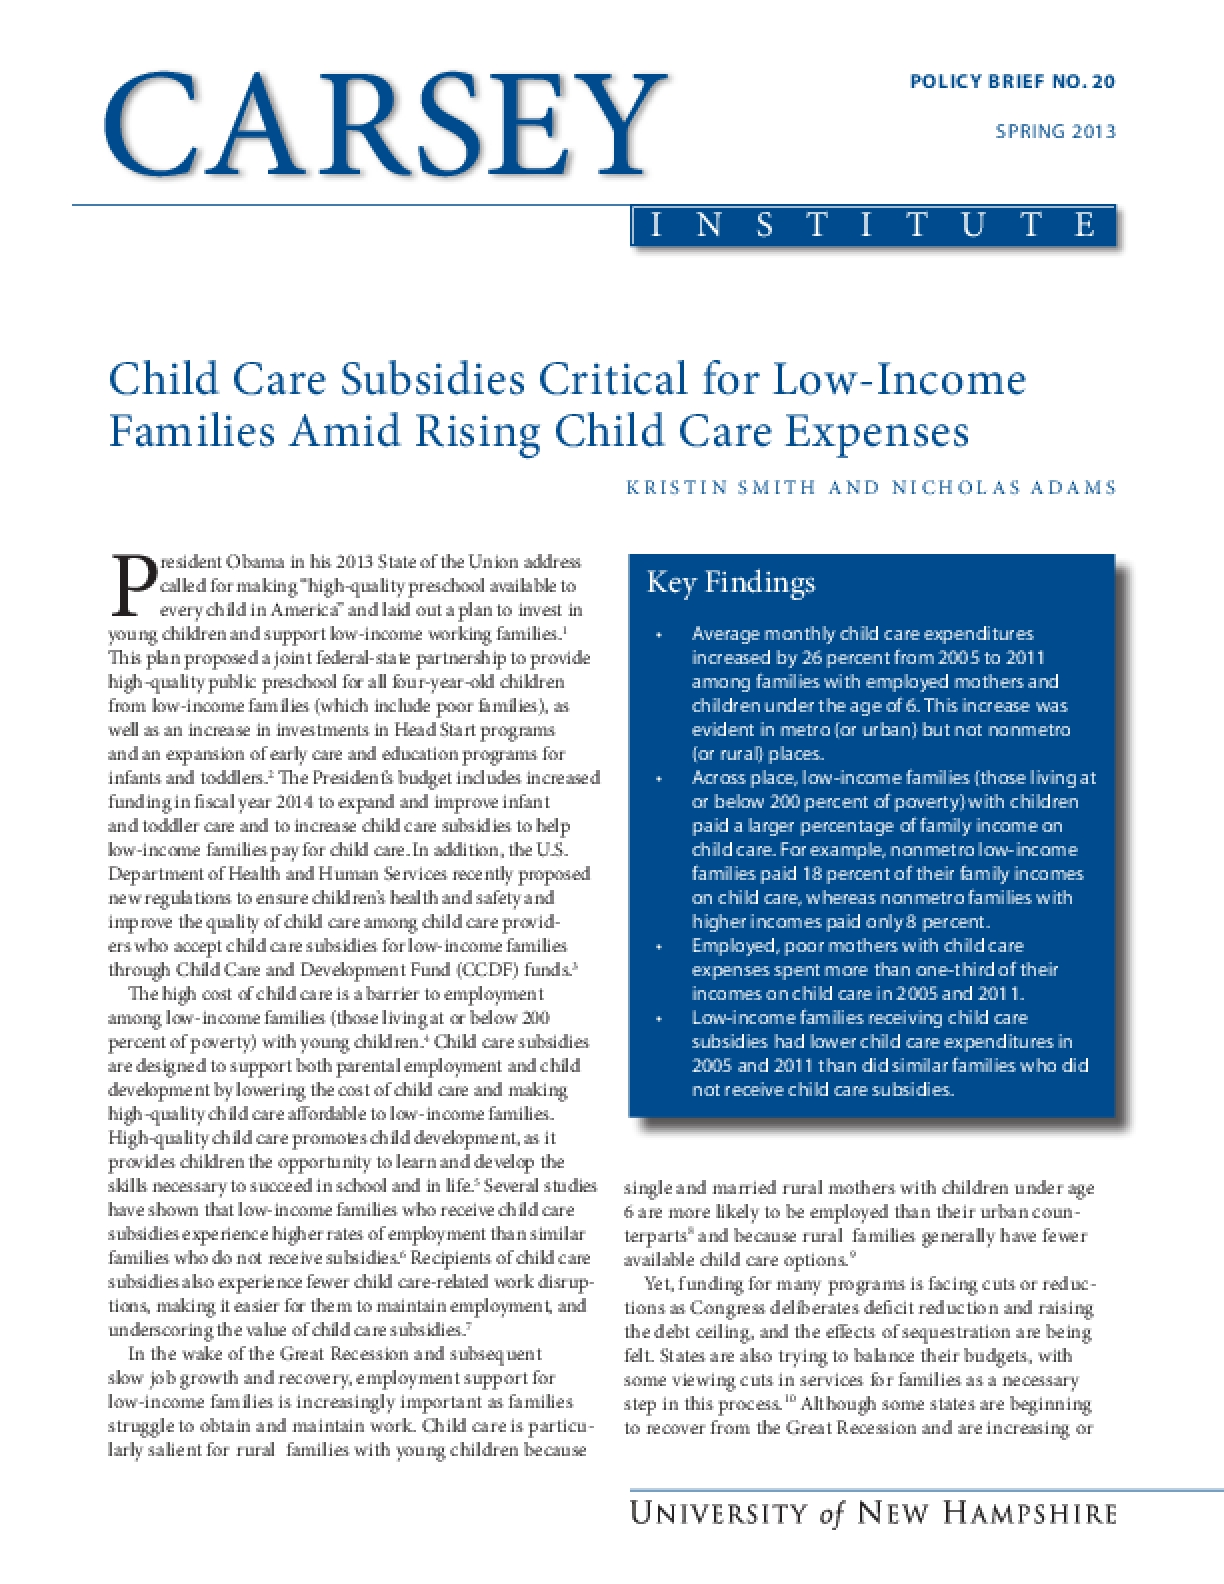 Child Care Subsidies Critical for Low-Income Families Amid Rising Child Care Expenses